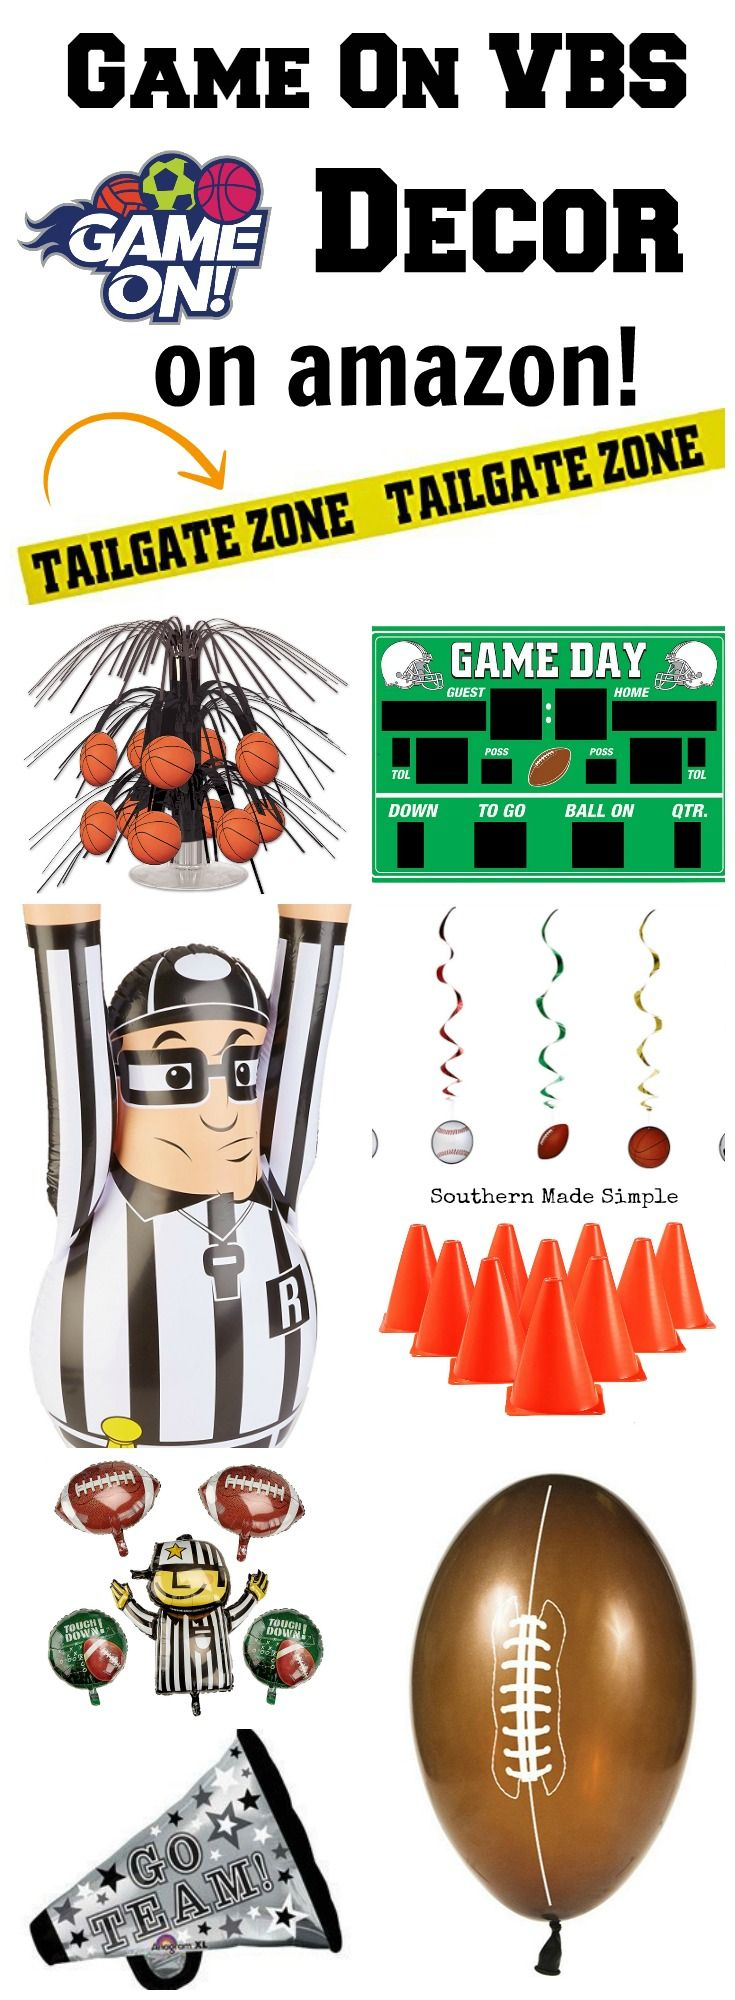 Are you ready to gear up for VBS 2018? Here's a roundup of the cutest game day decor you need to make your Game On vbs great, and it's all available on Amazon! Hello, 2 day shipping!